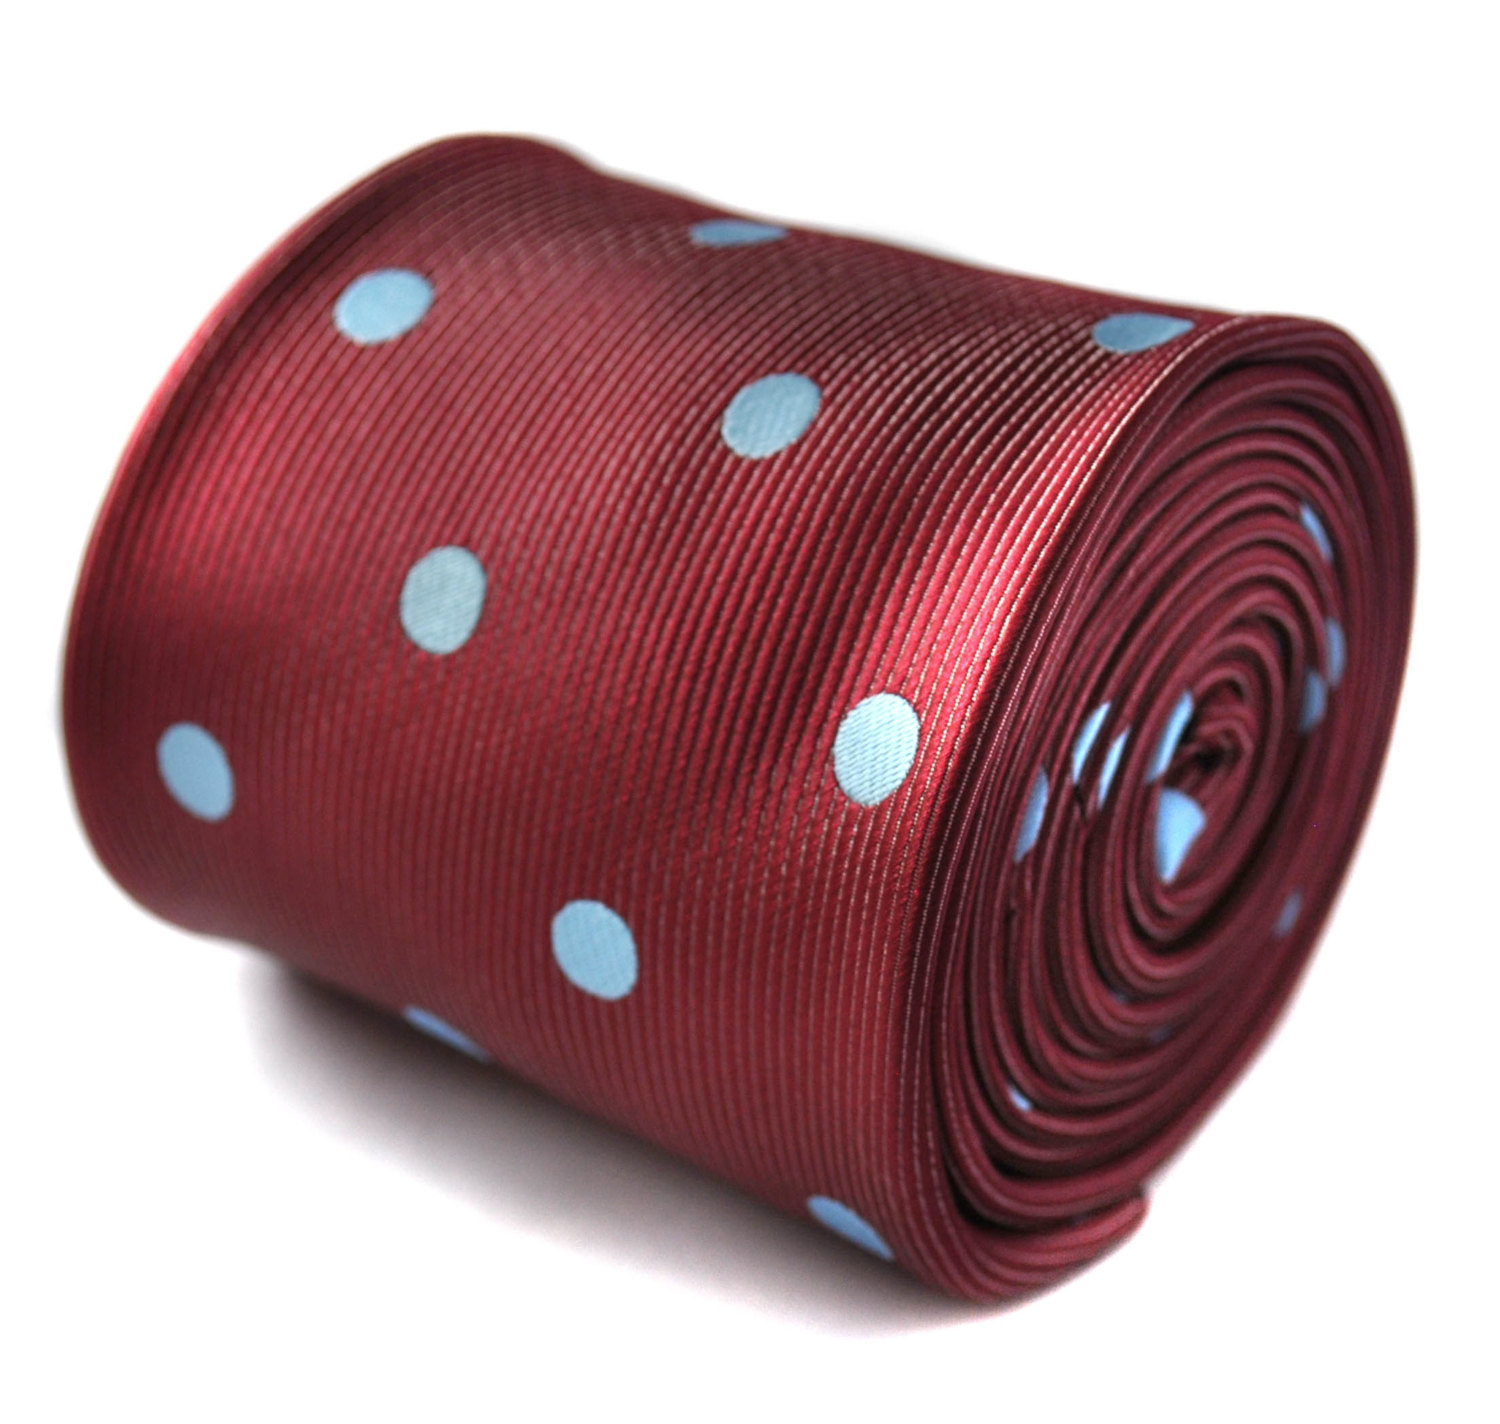 maroon and grey polka spot tie with signature floral design to the rear by Frede